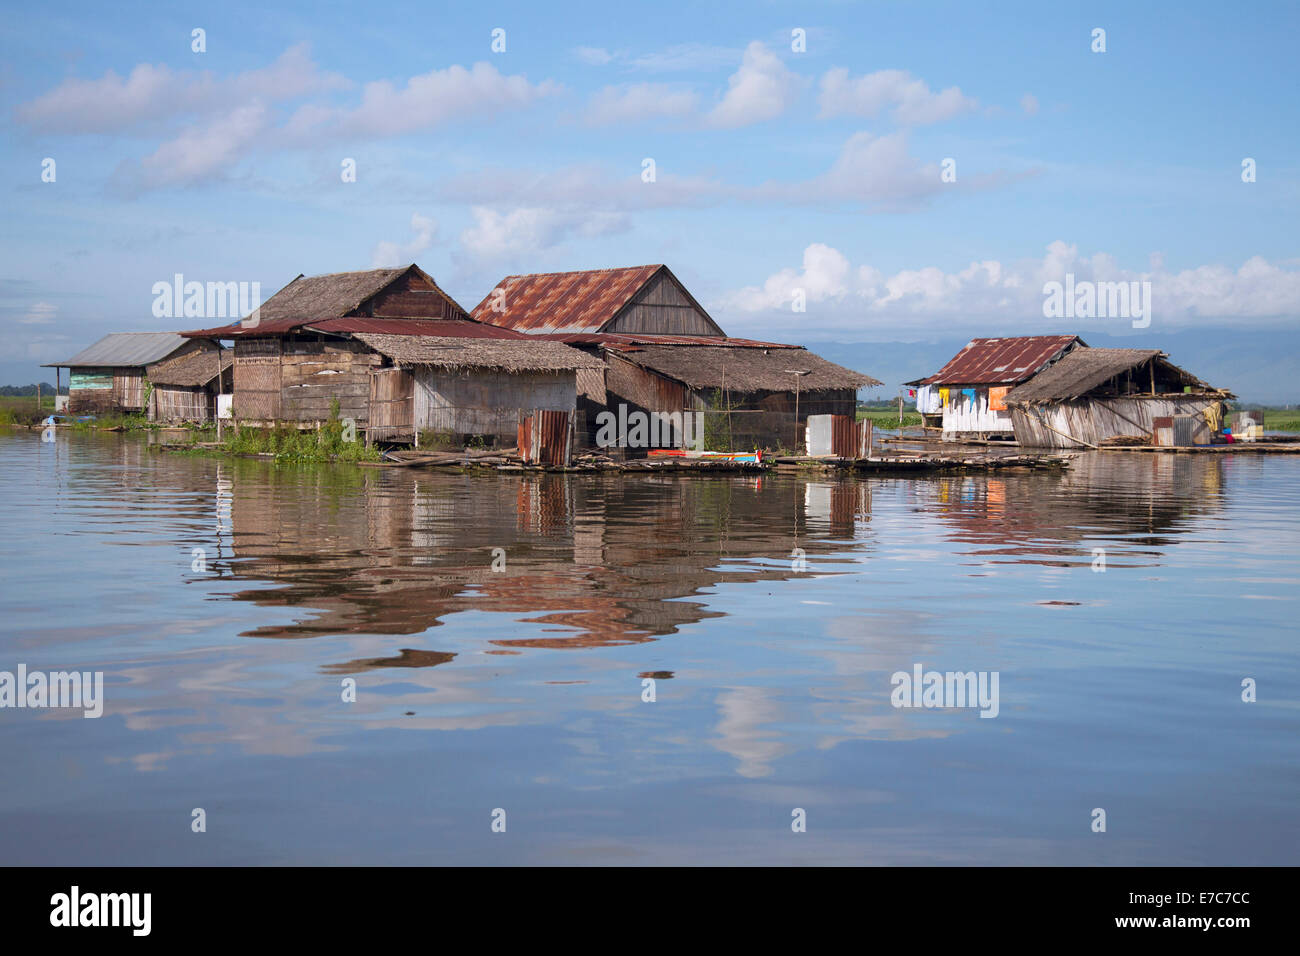 Floating village on the Tempe lake in Sulawesi, Indonesia - Stock Image